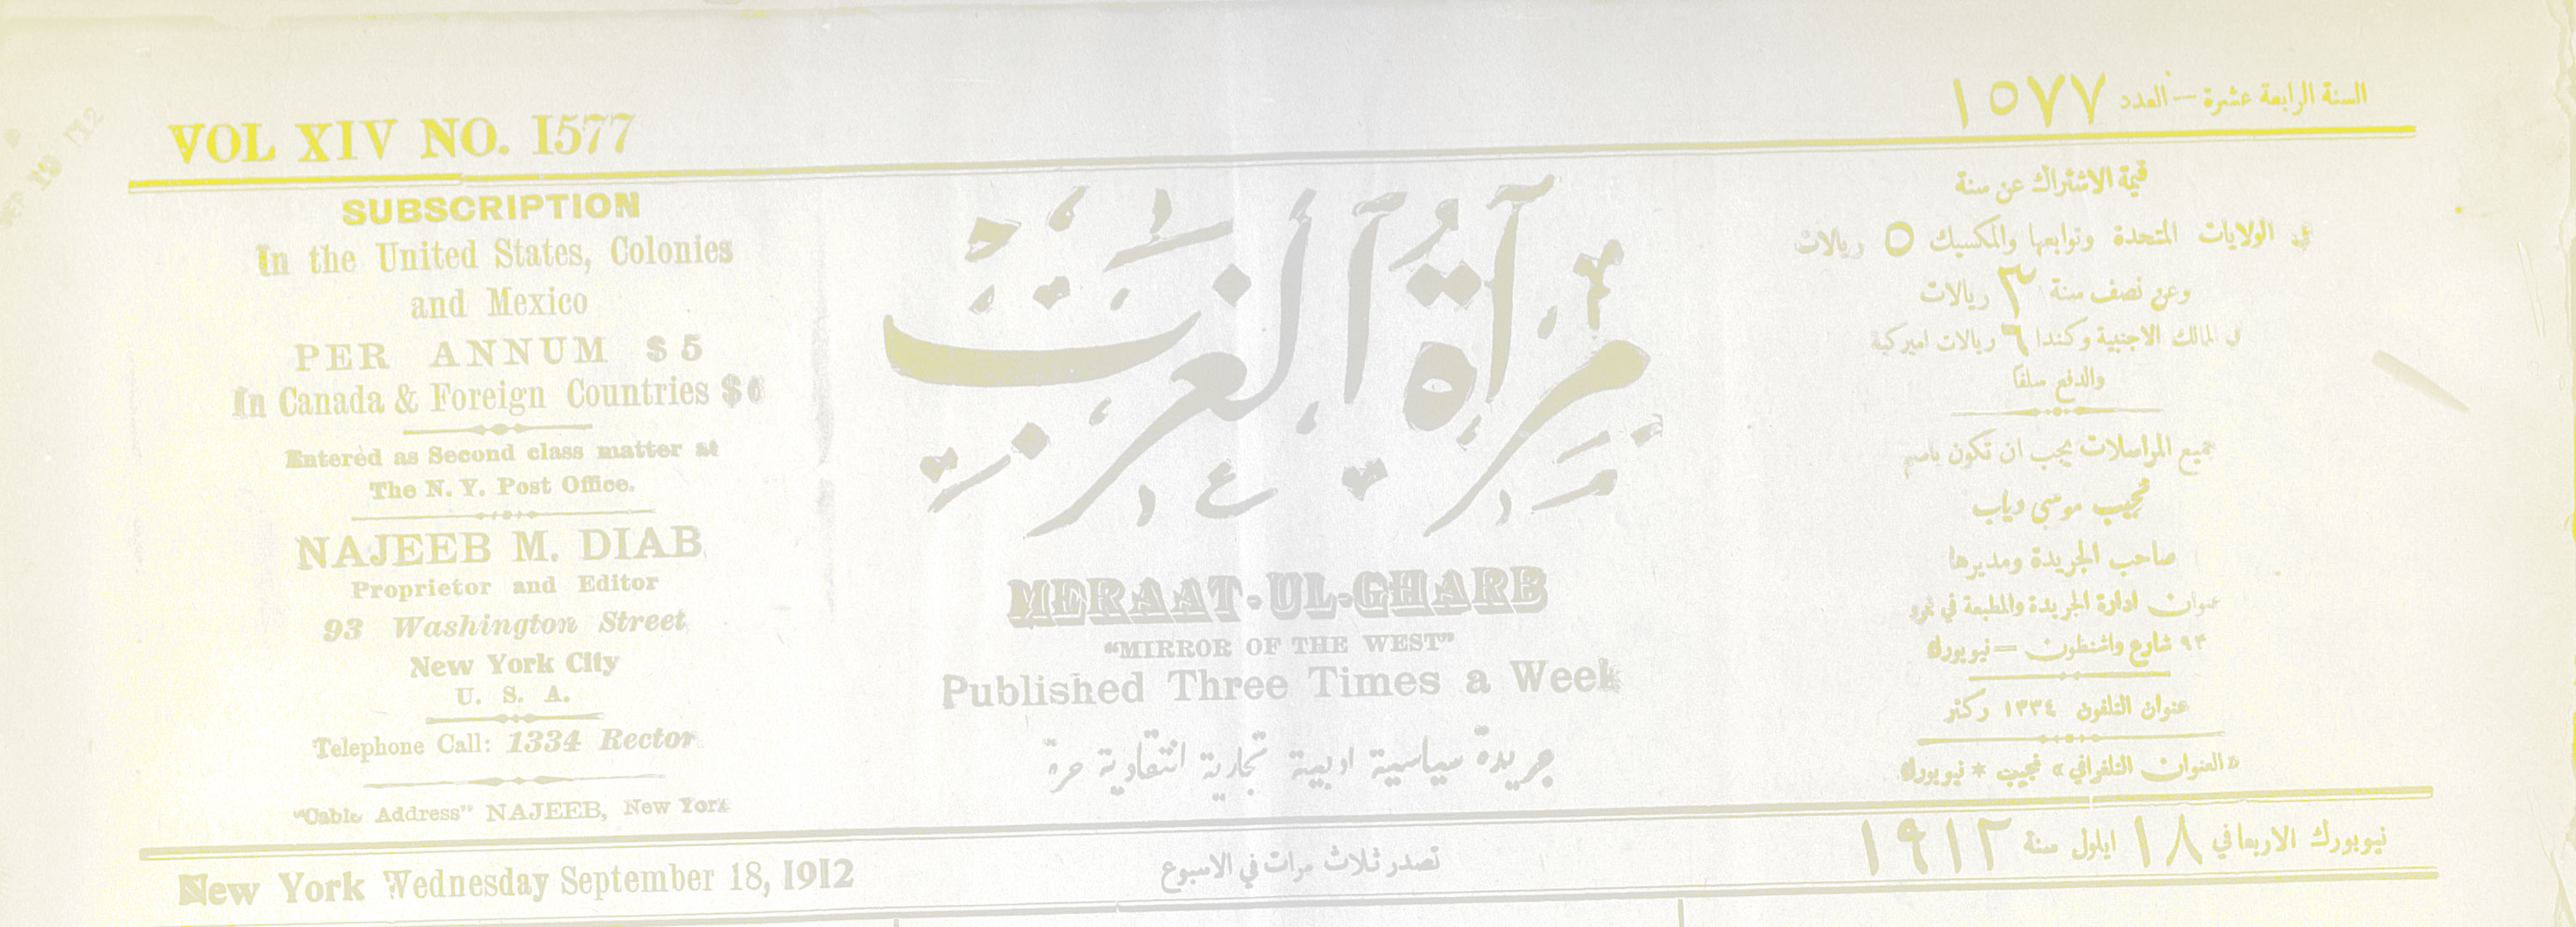 Arab American newspaper Mira'at al-Gharb